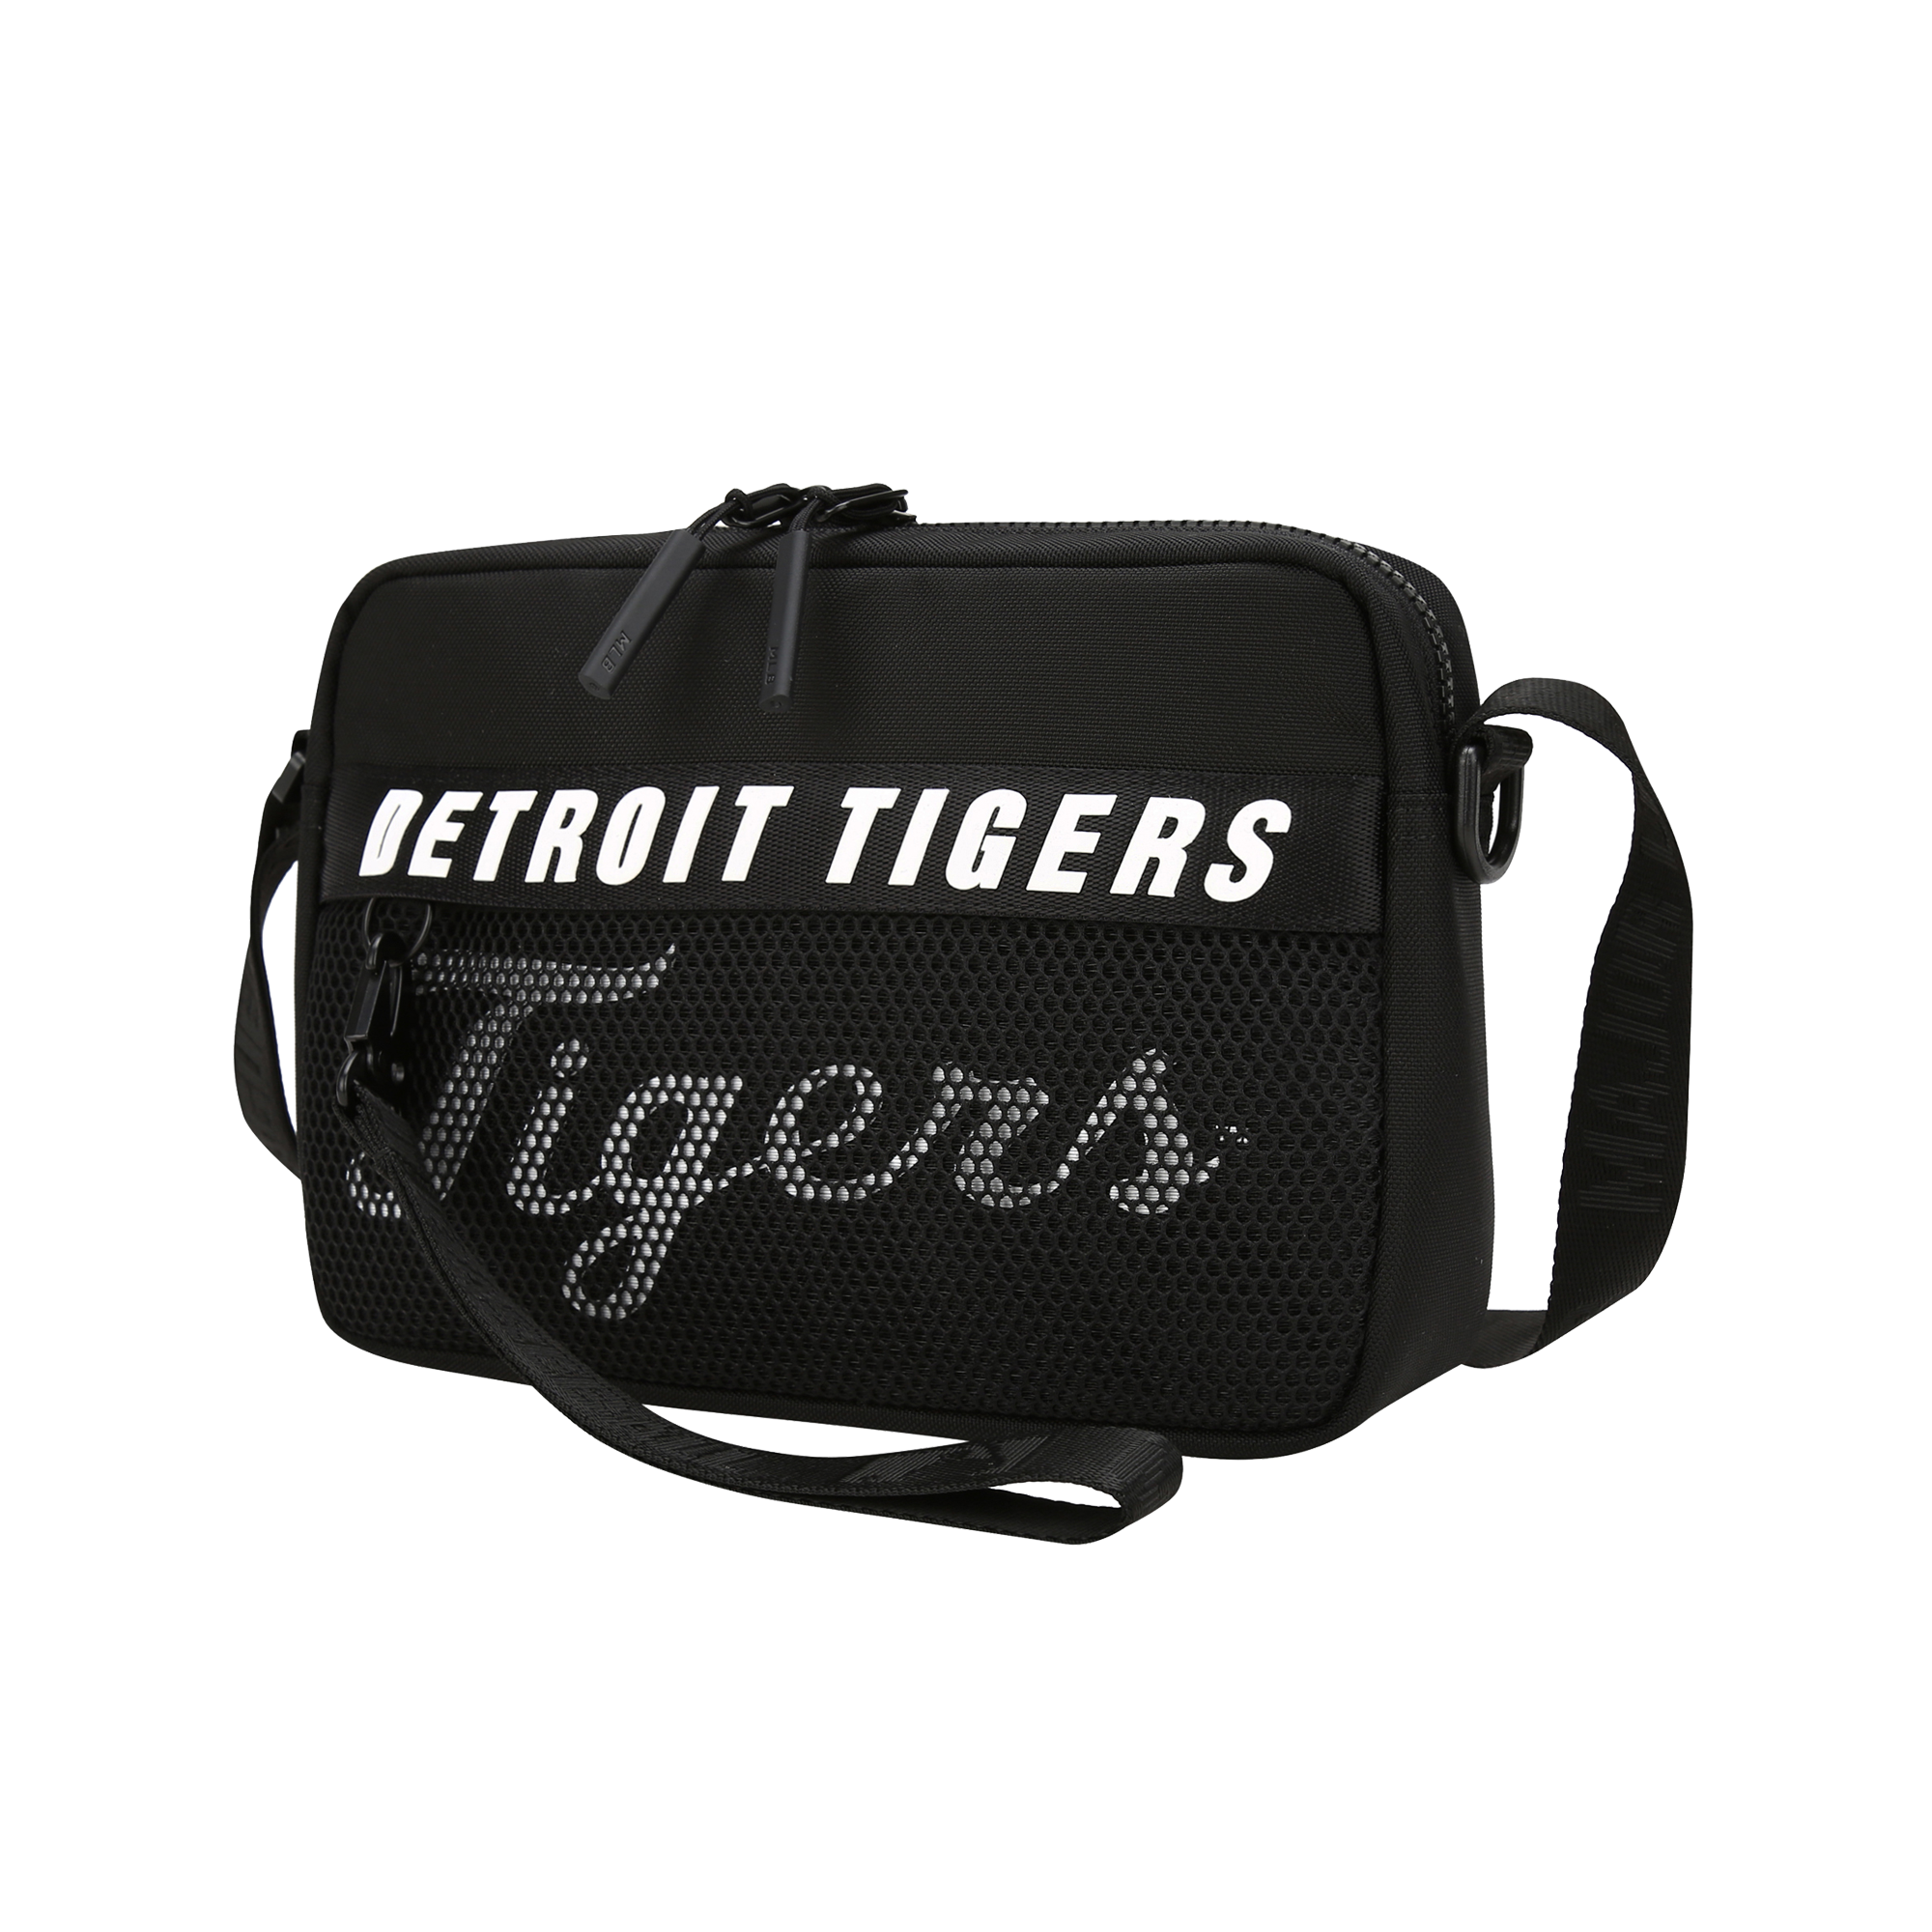 DETROIT TIGERS ZEST CROSS BAG